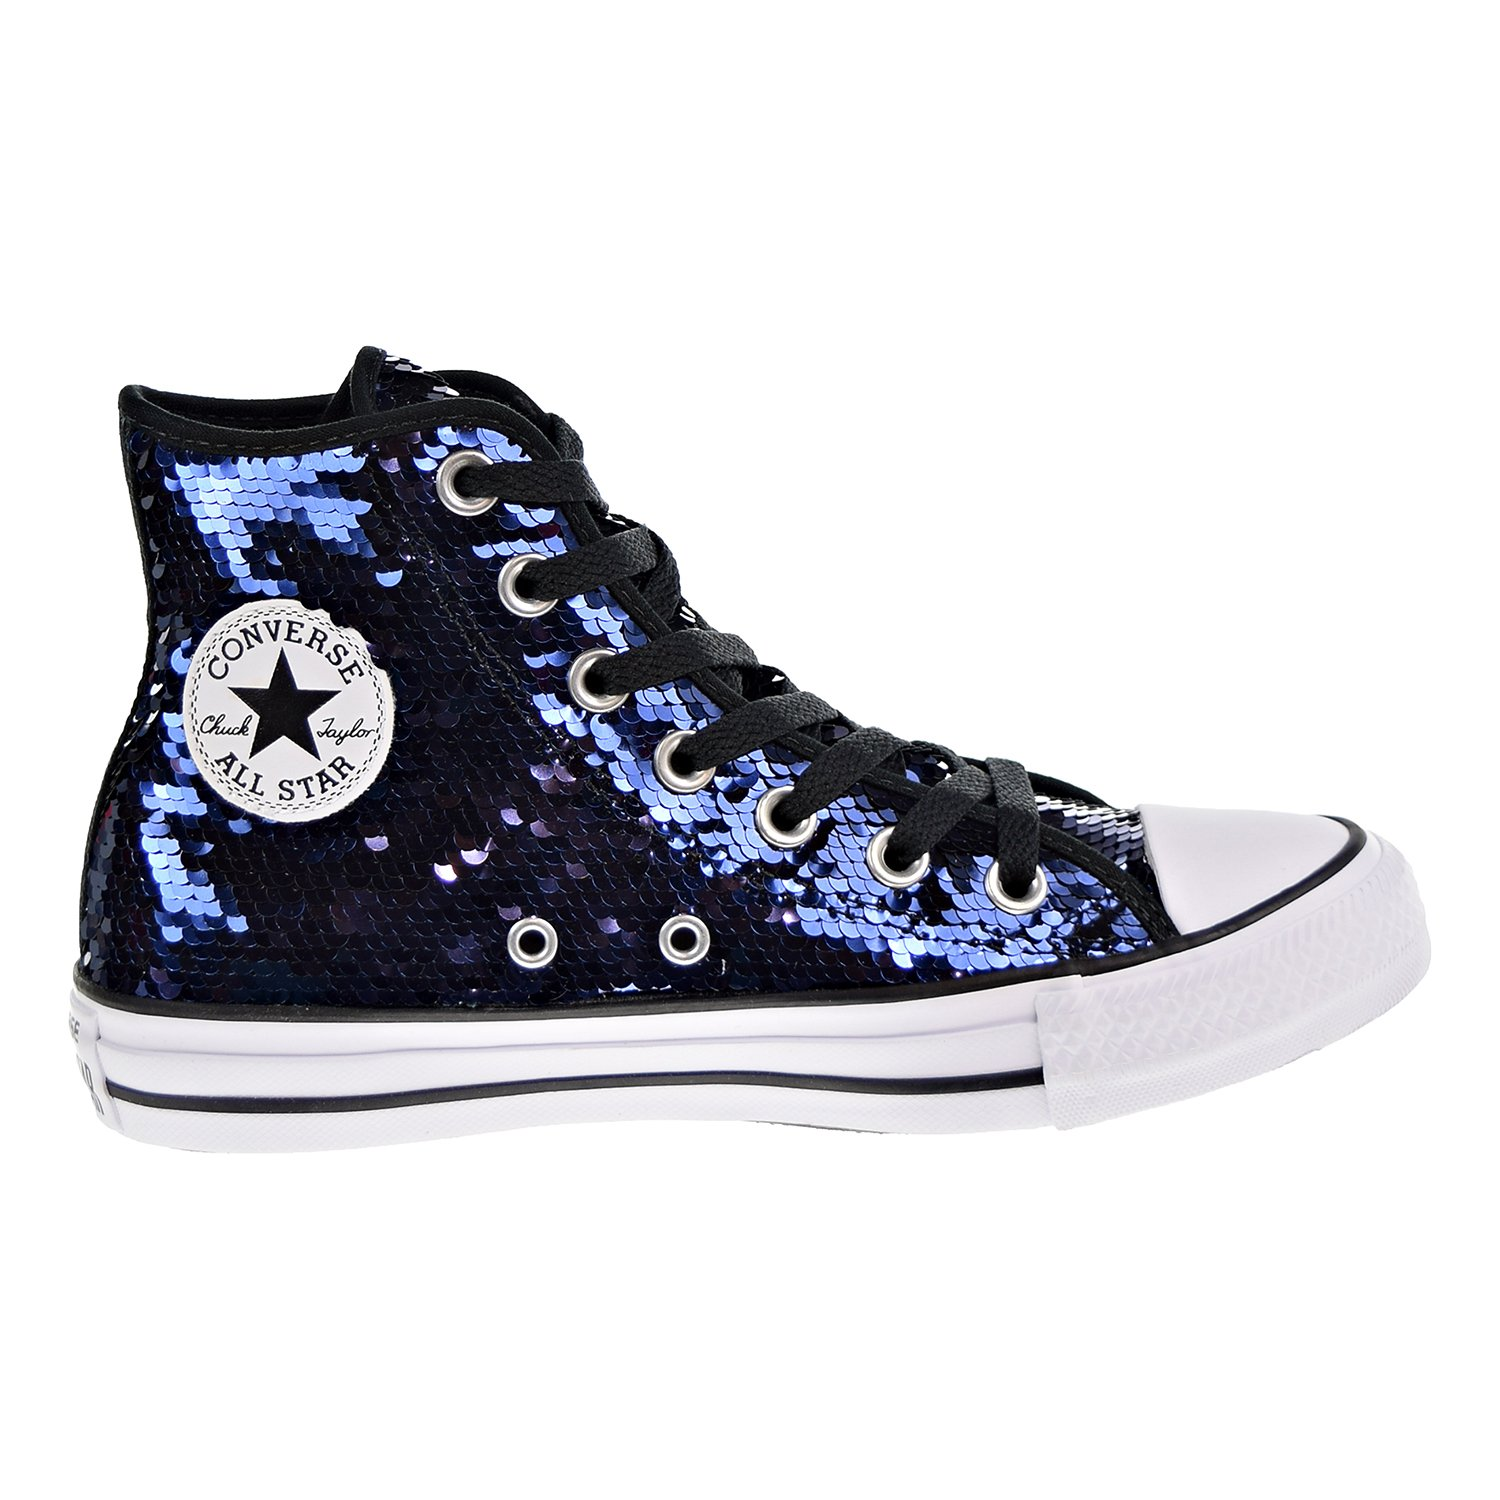 7ec0dab5def171 Converse Womens Chuck Taylor All Star Hi Canvas Trainers